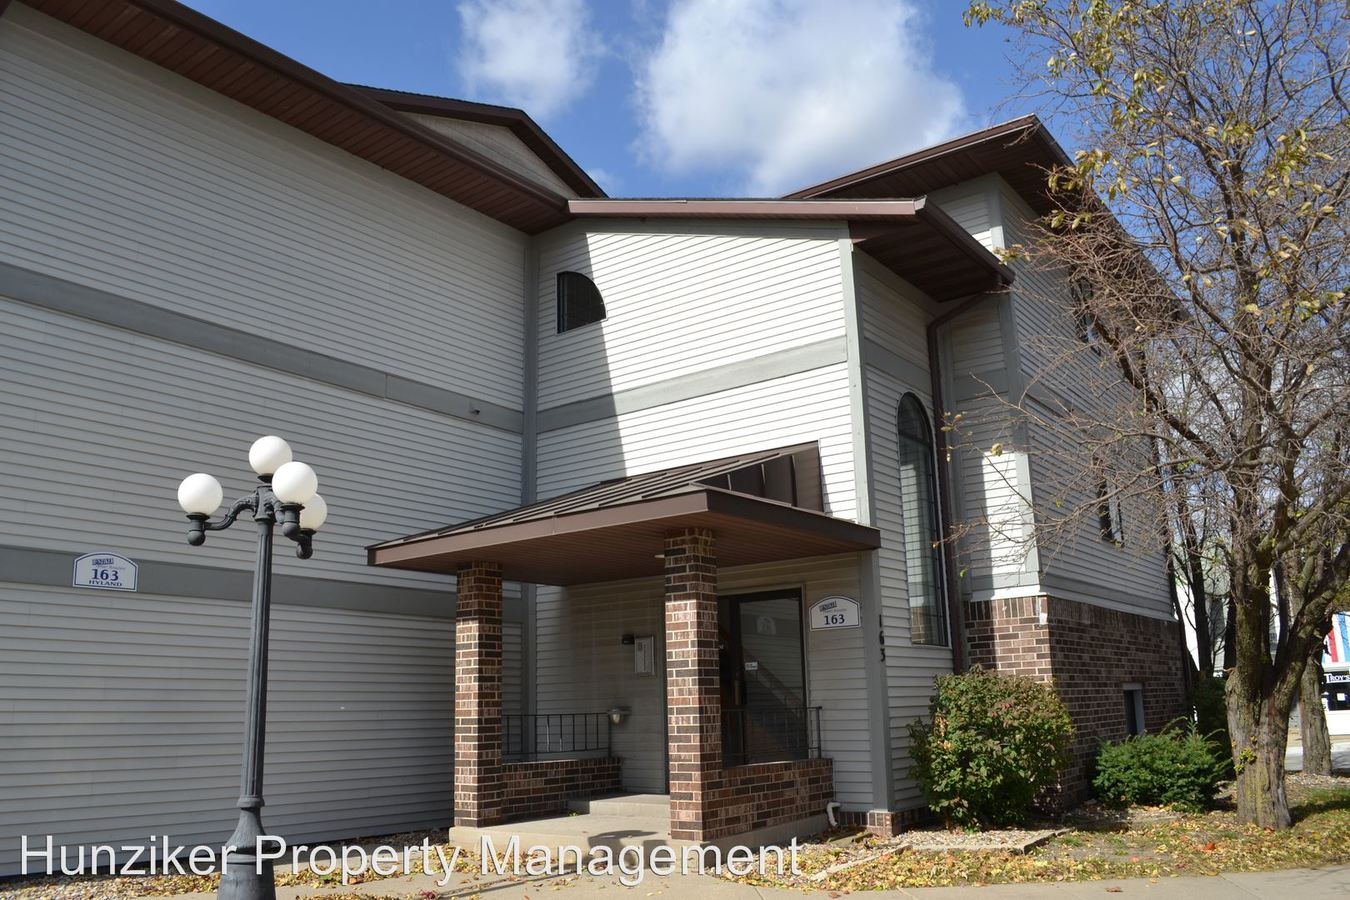 2 Bedrooms 1 Bathroom Apartment for rent at 163 N. Hyland in Ames, IA